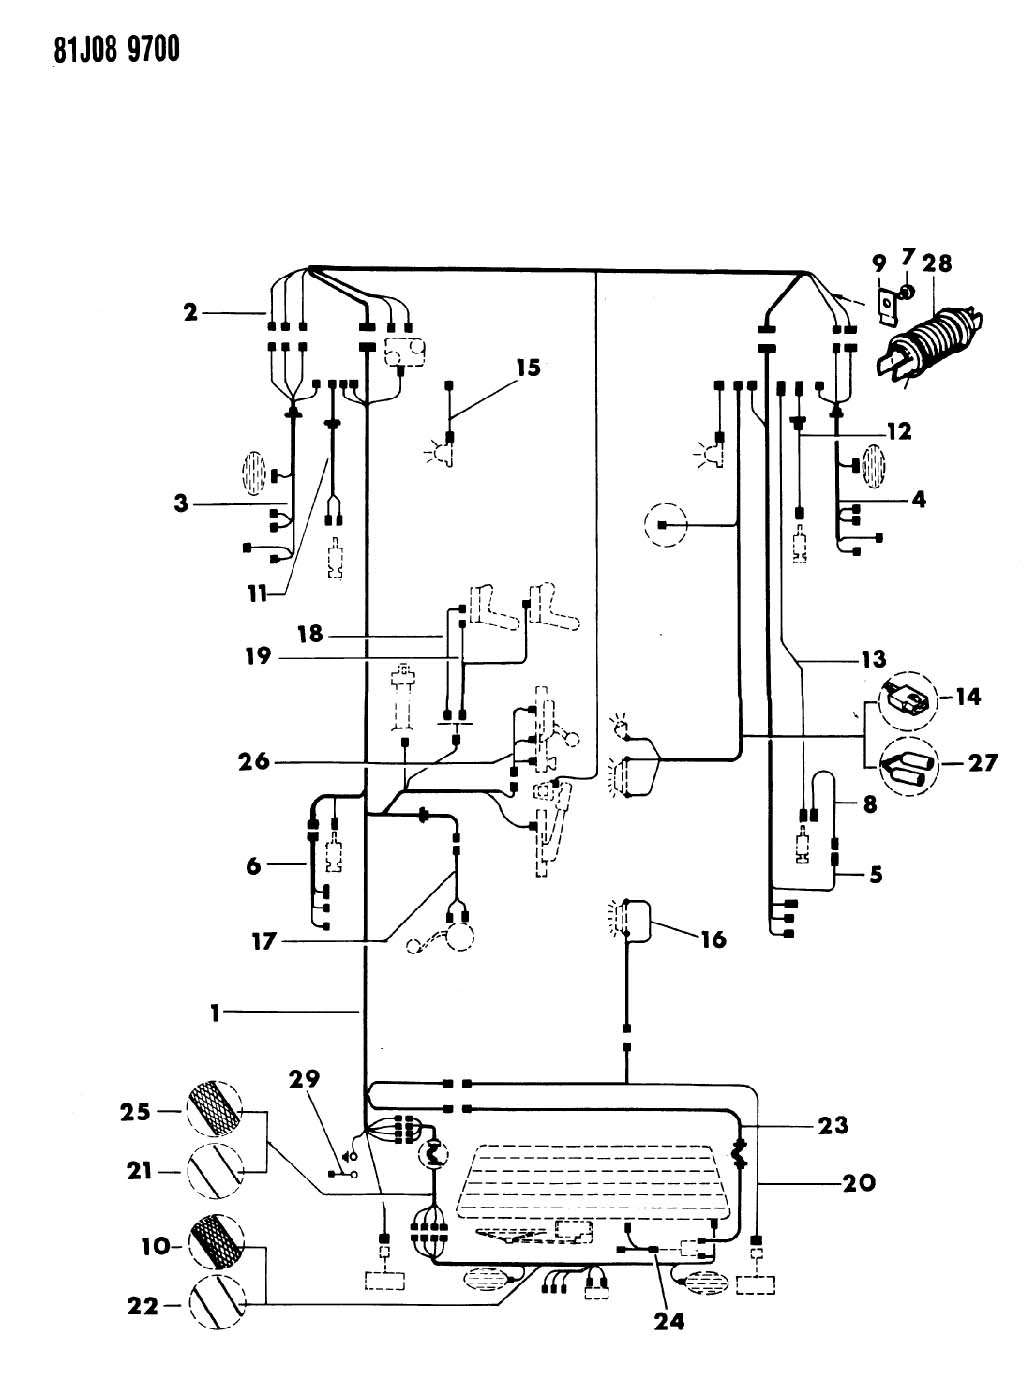 02 Dodge 2500 Tow Package Wiring Diagram Auto Electrical 2011 Toyota Tundra Trailer Schematic